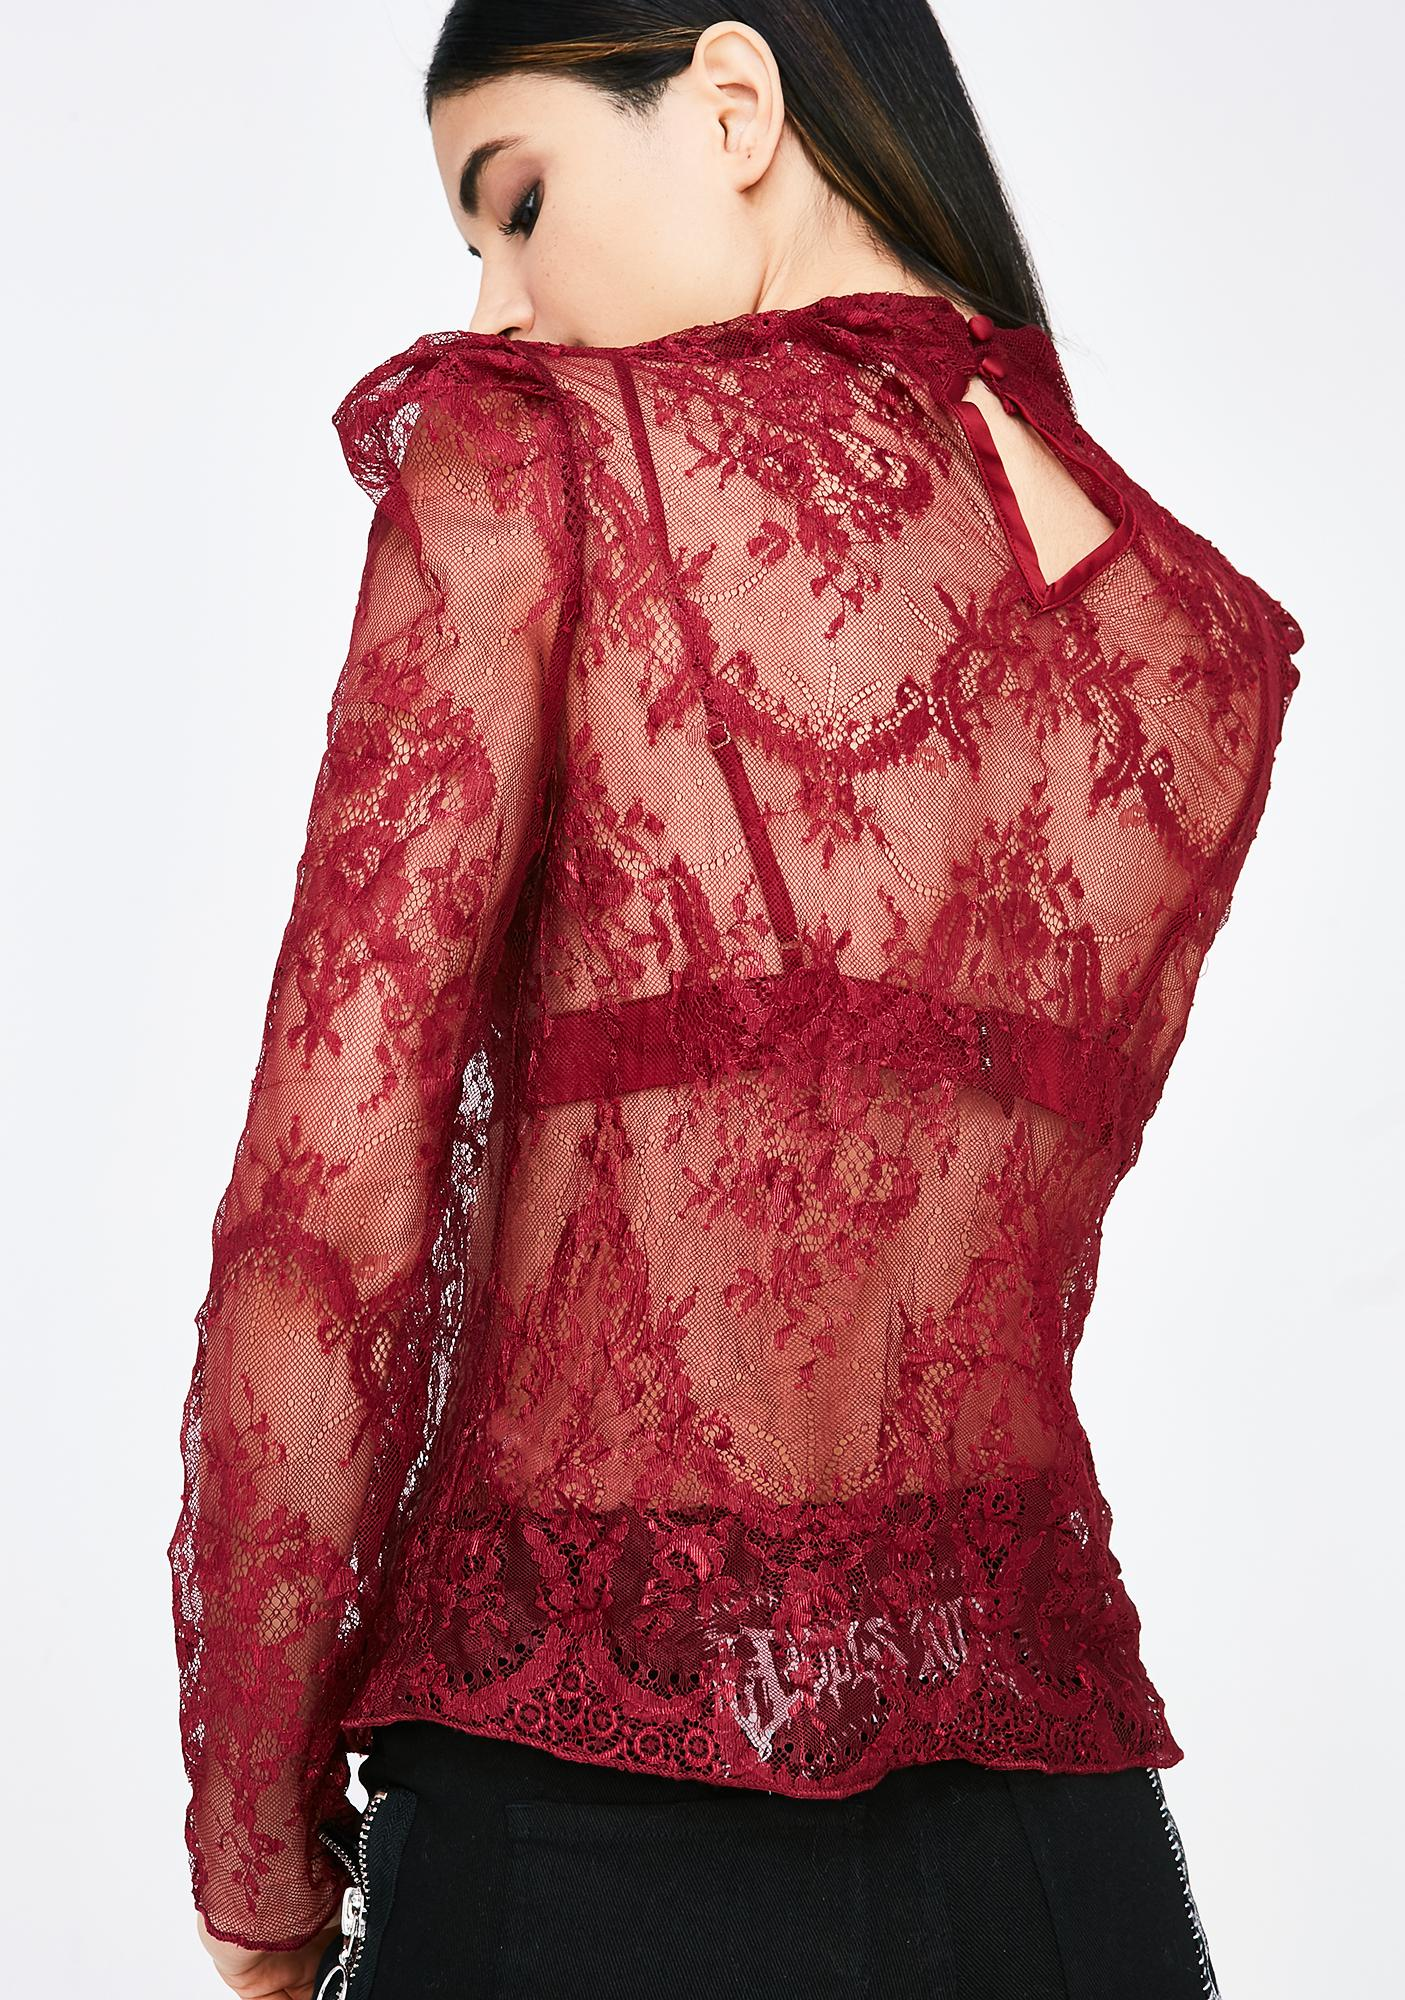 Hot Date Lace Top